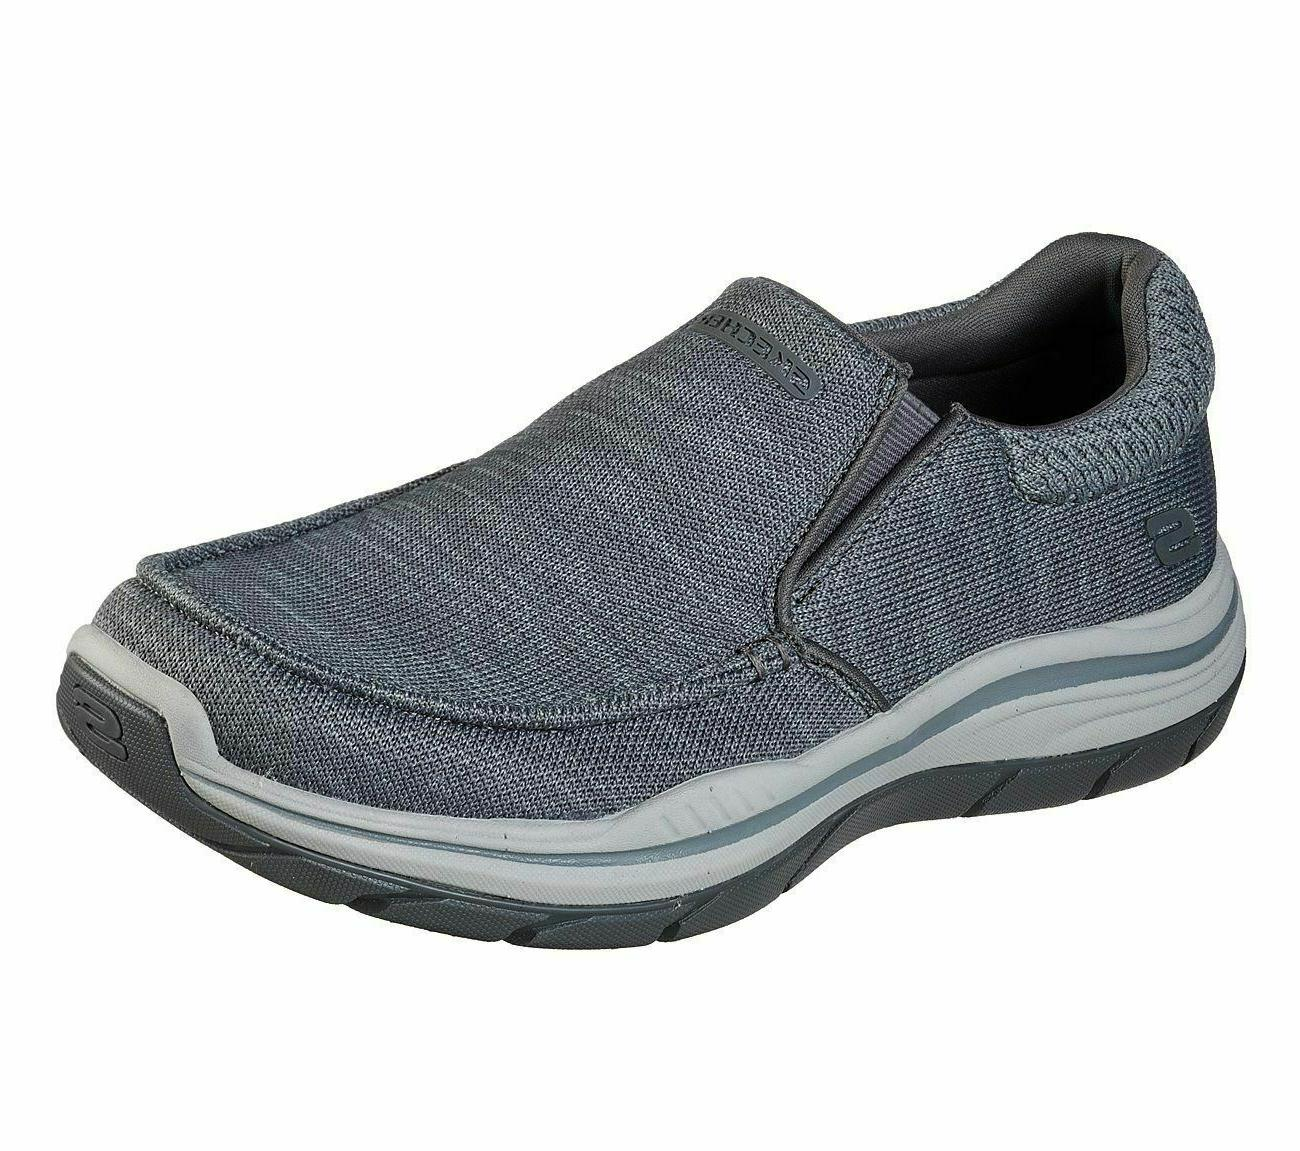 Gray Skechers Shoes Men's Extra Wide Fit Mesh Slip On Memory